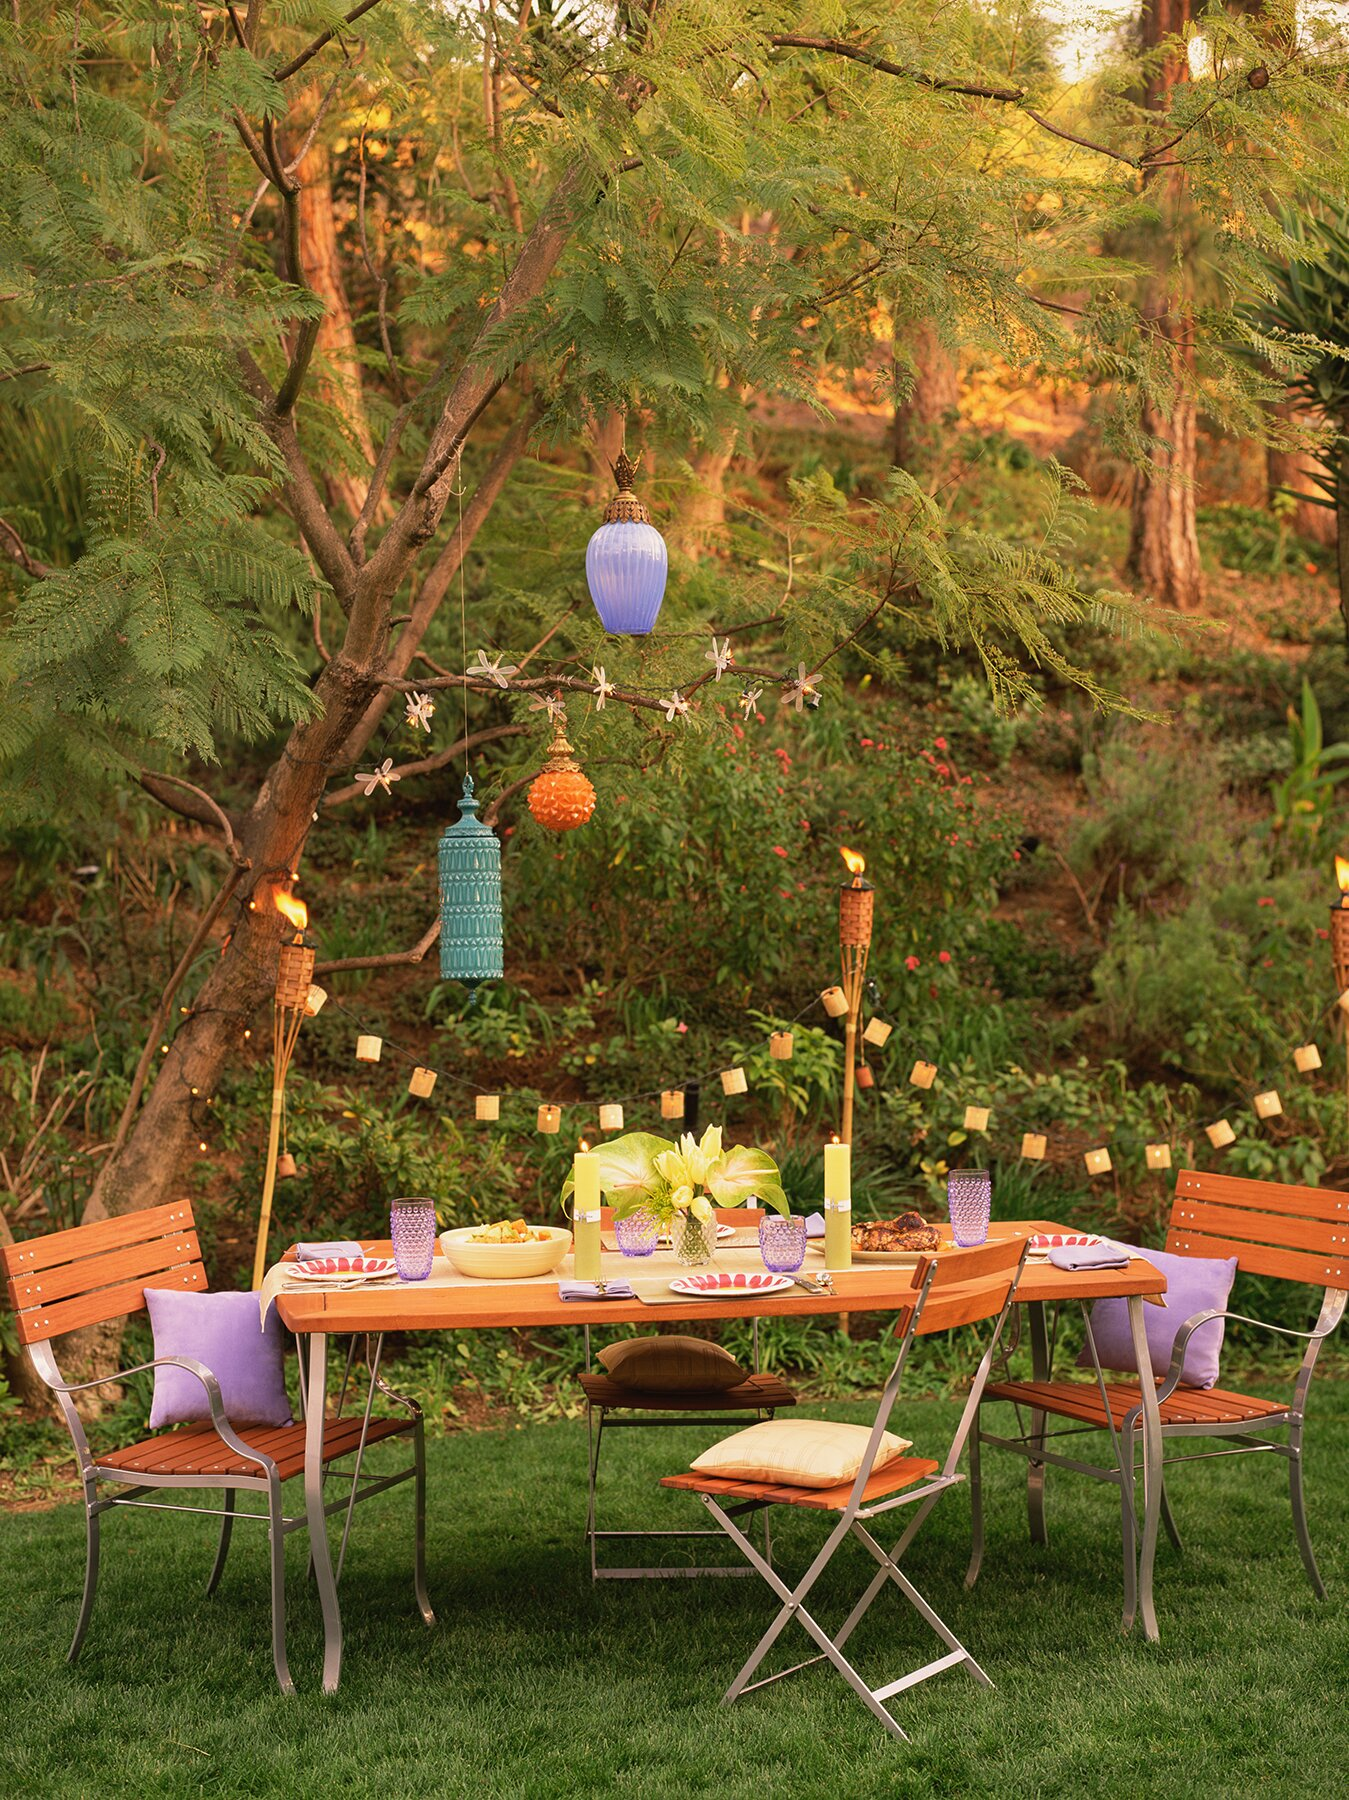 17 Outdoor Party Ideas For An Effortless Backyard Gathering Real Simple